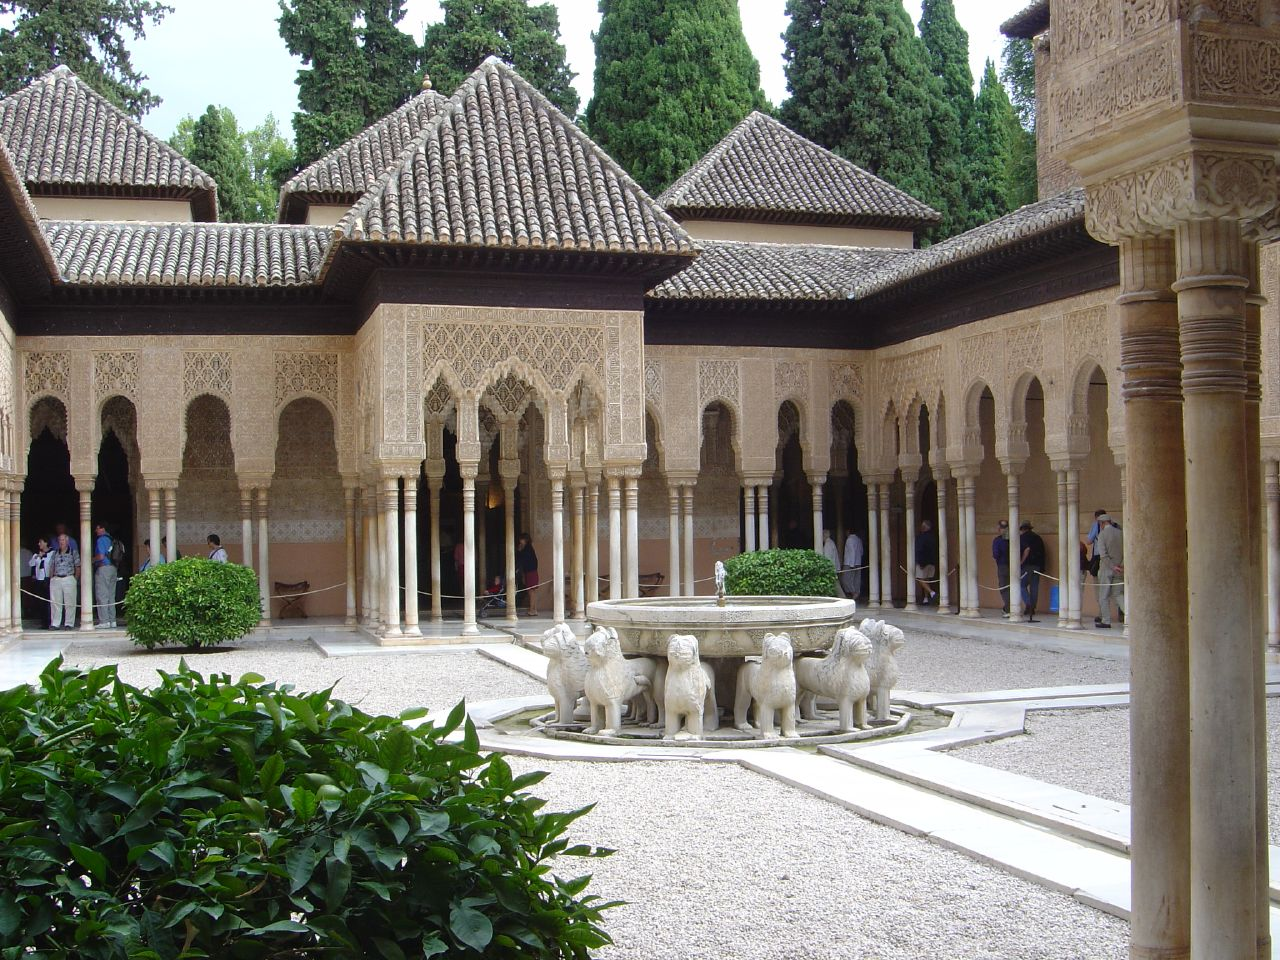 Courtyard of the Lions1362Granada, Spain